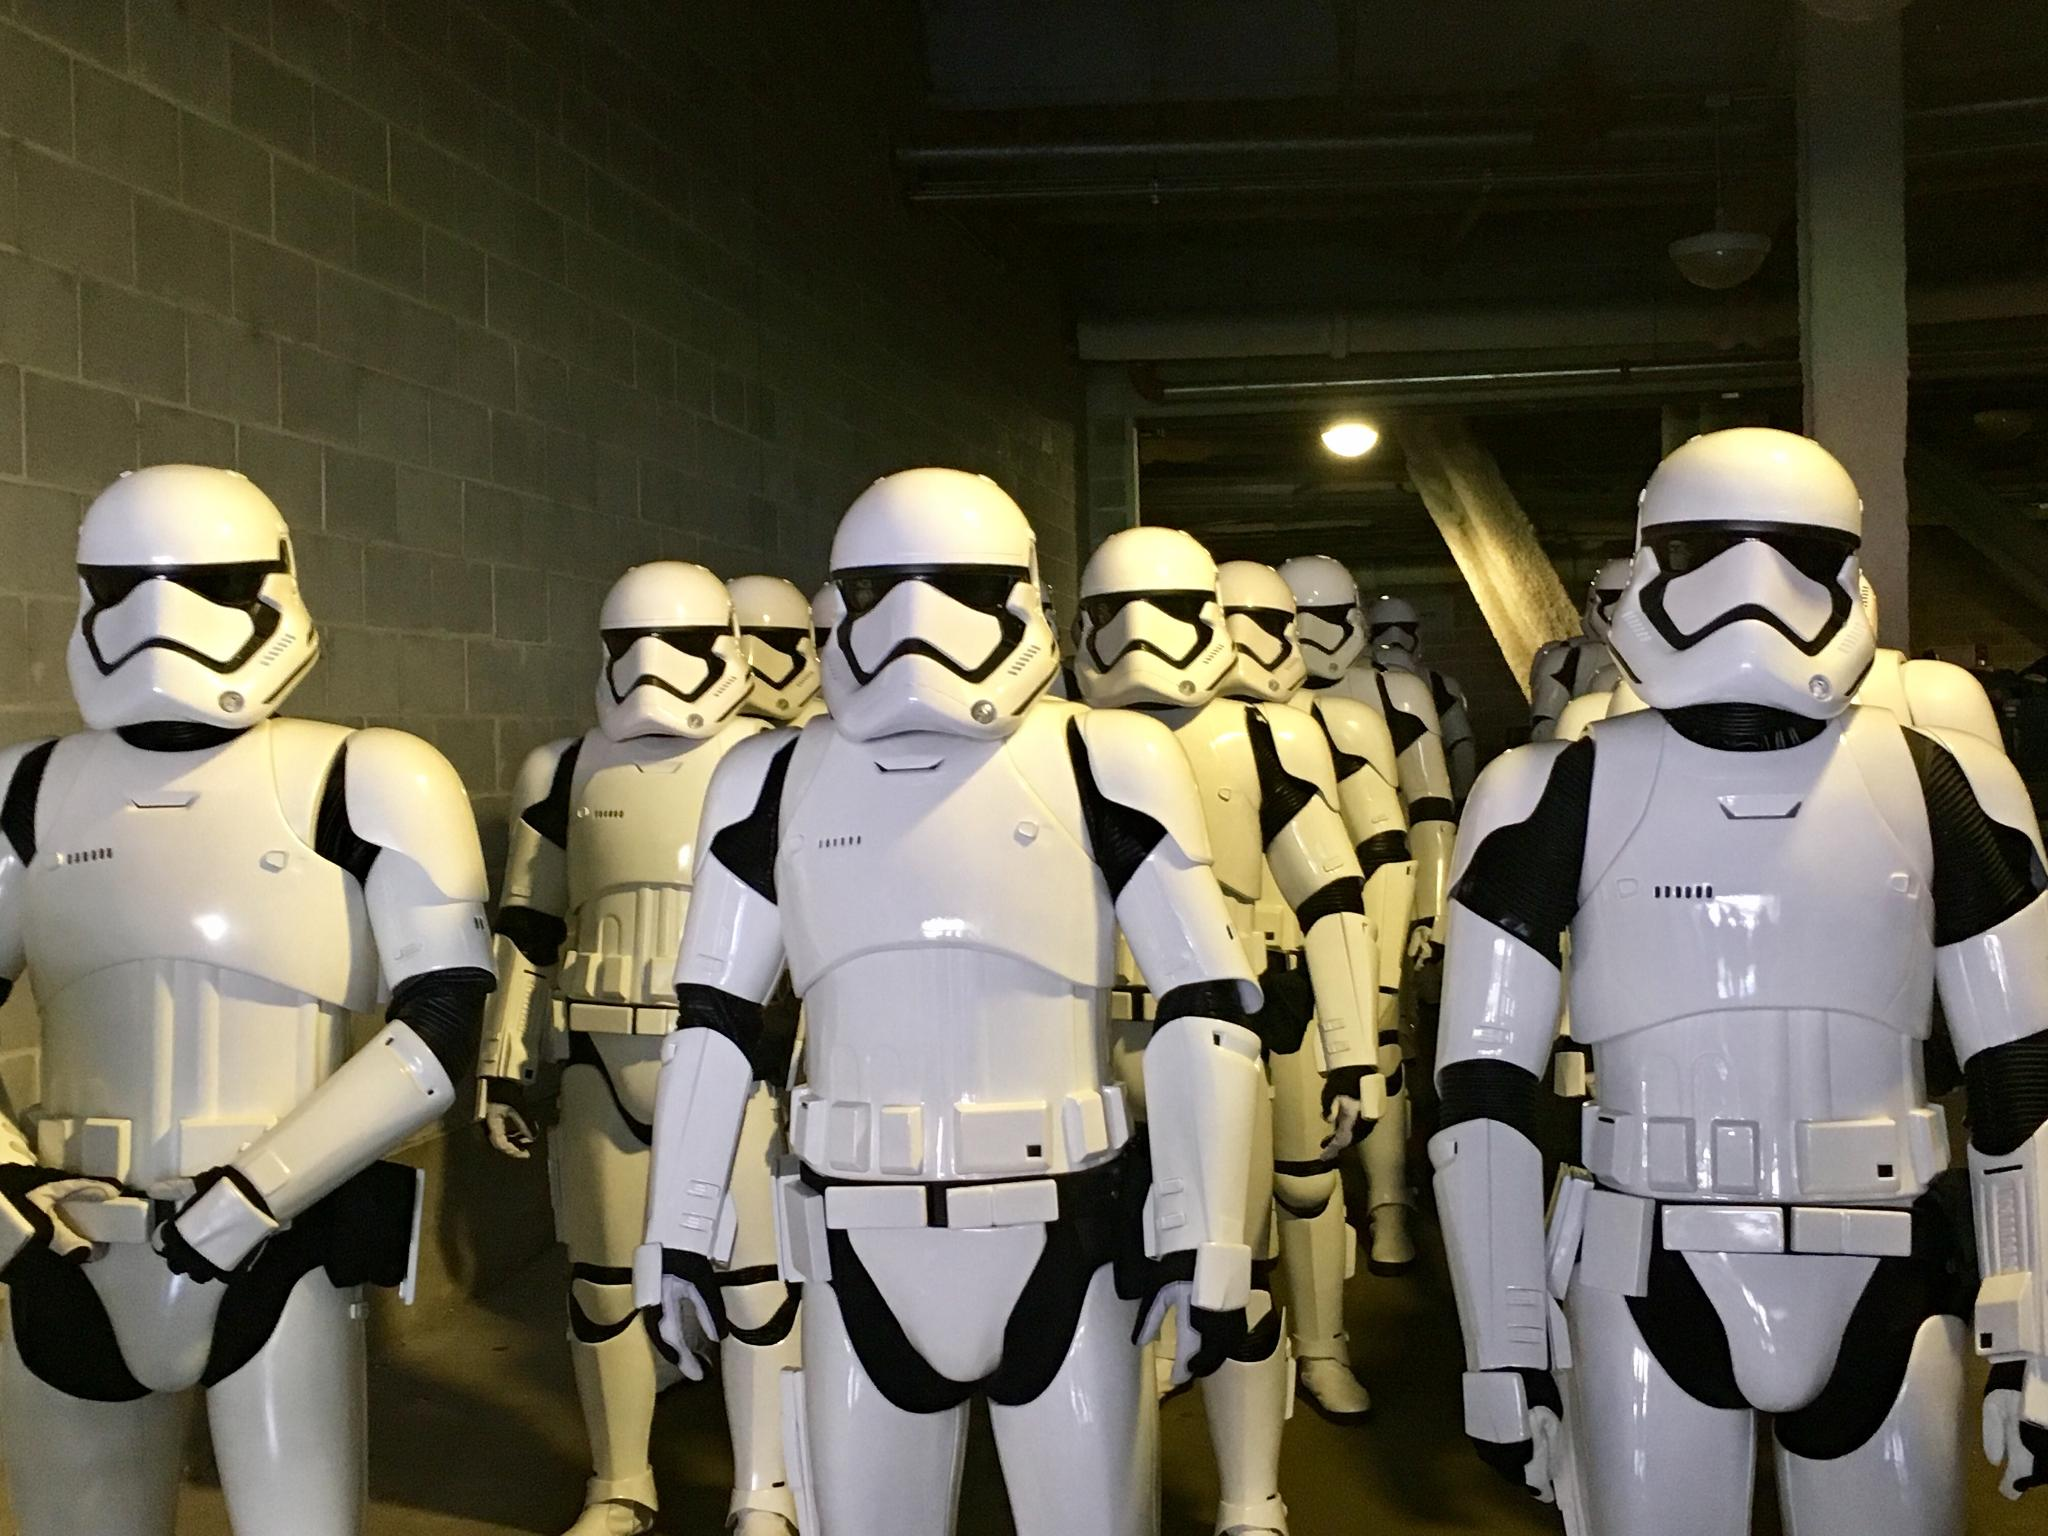 Skipping the 2nd half?   These guys find your lack of faith disturbing. #TheLastJedi https://t.co/hPCDmeEeSZ